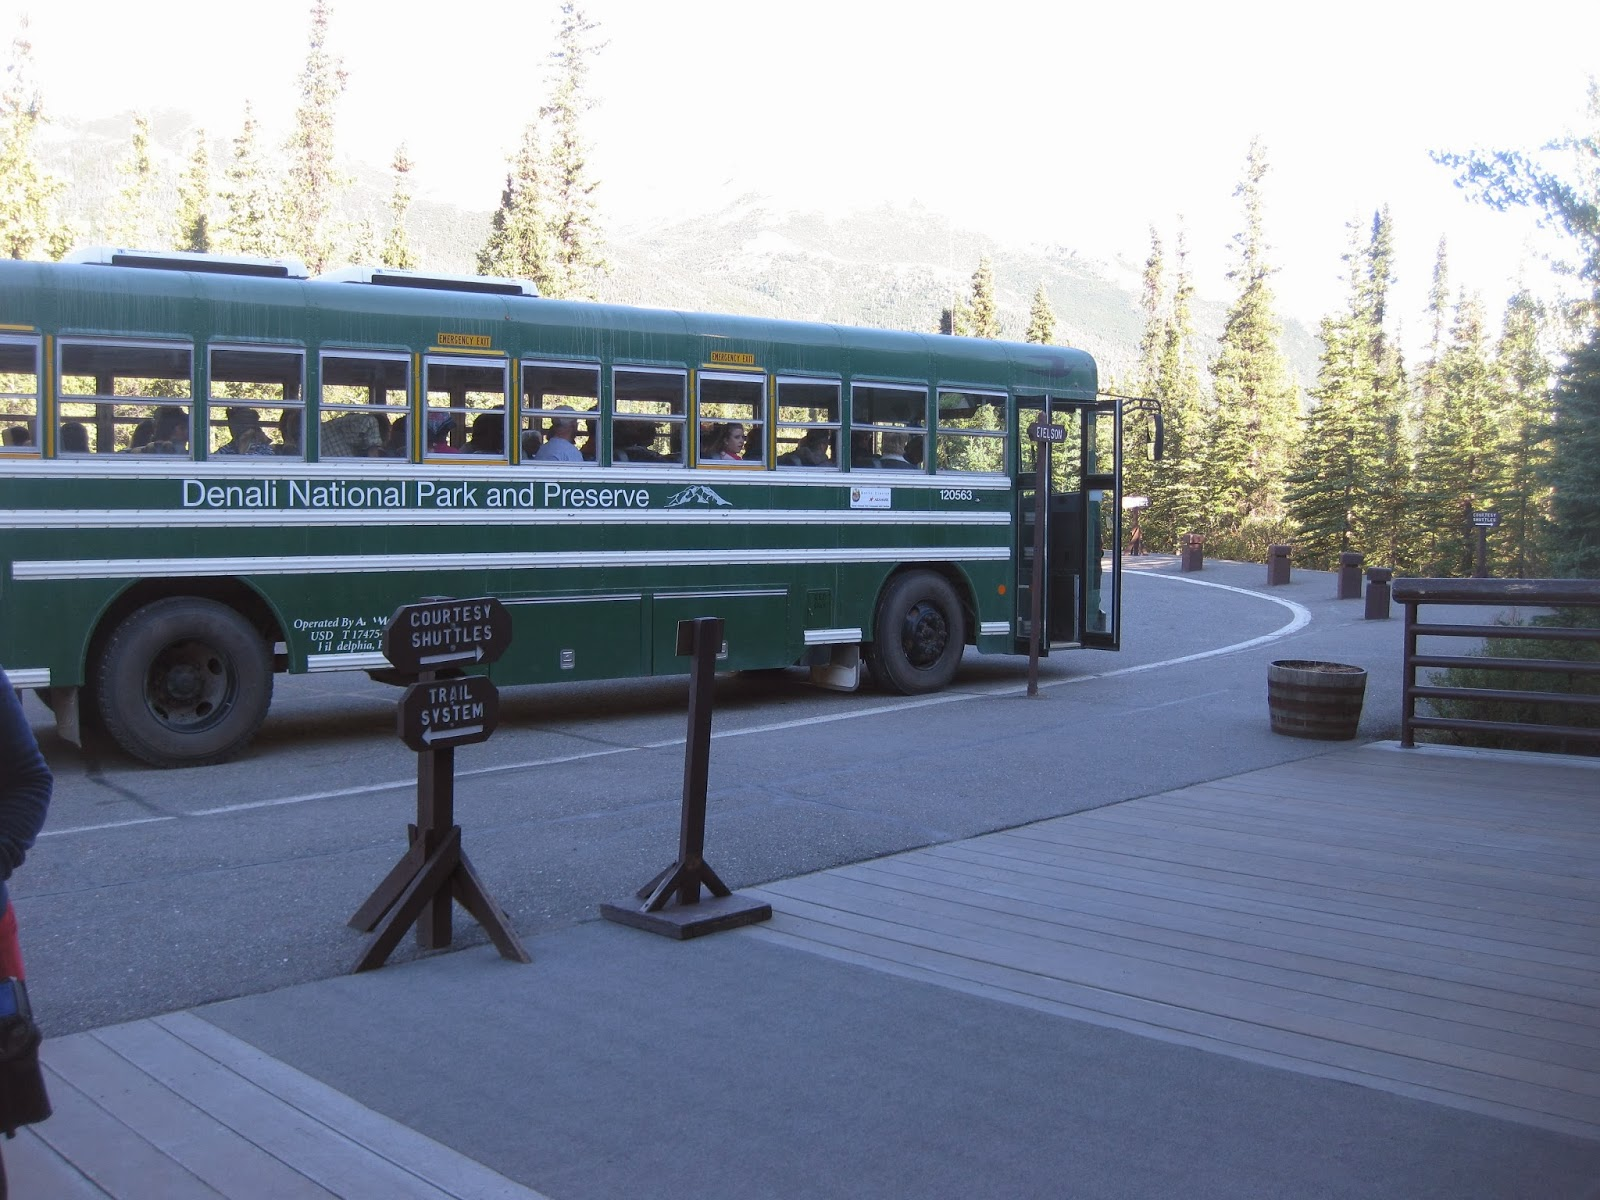 Denali Park shuttle bus